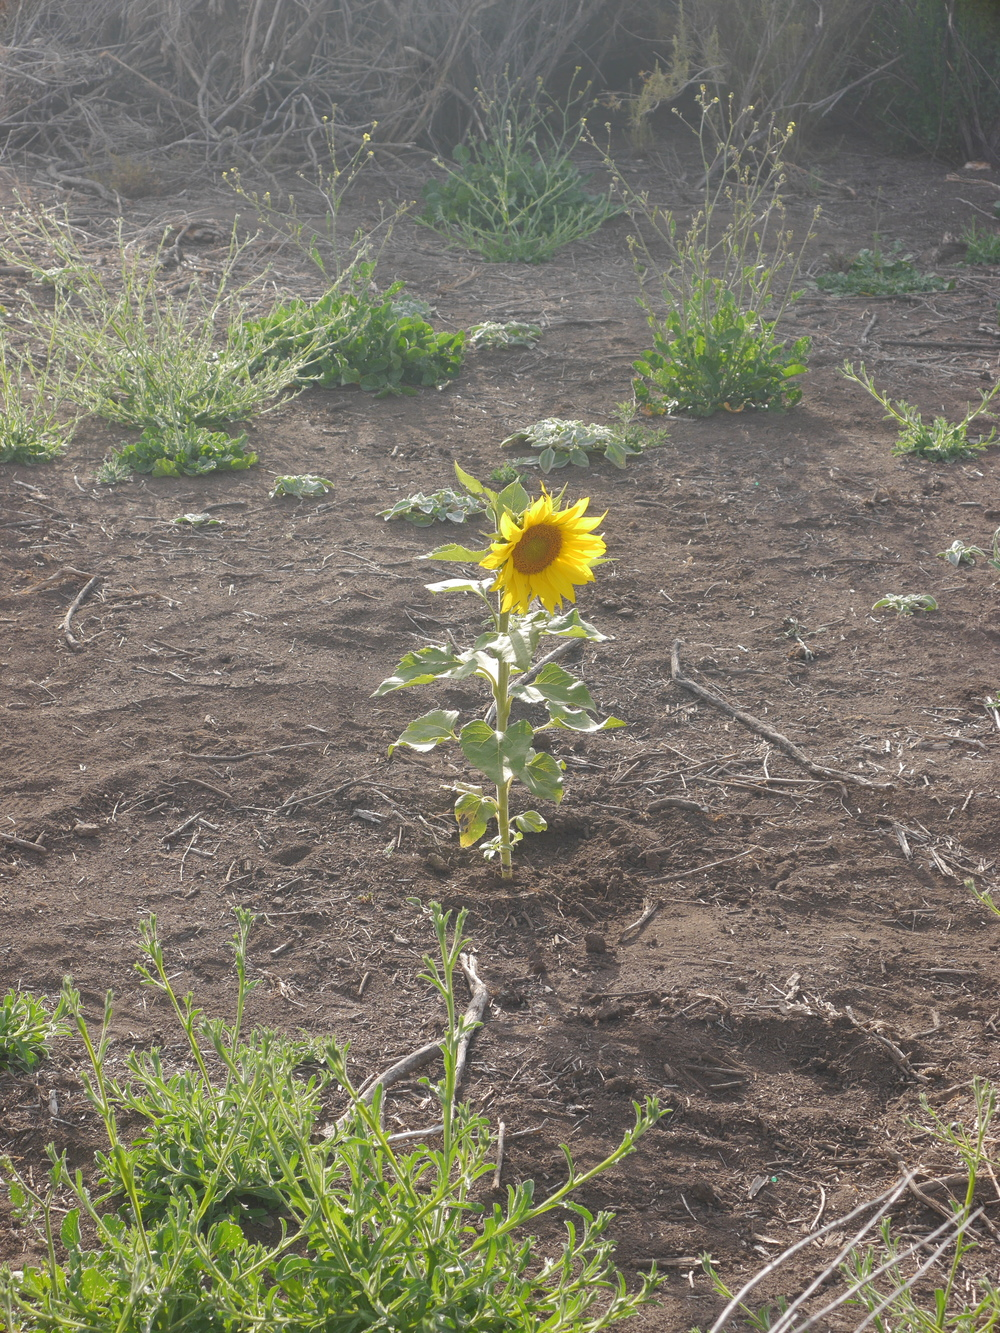 A solitary (and brightly lit) sunflower.